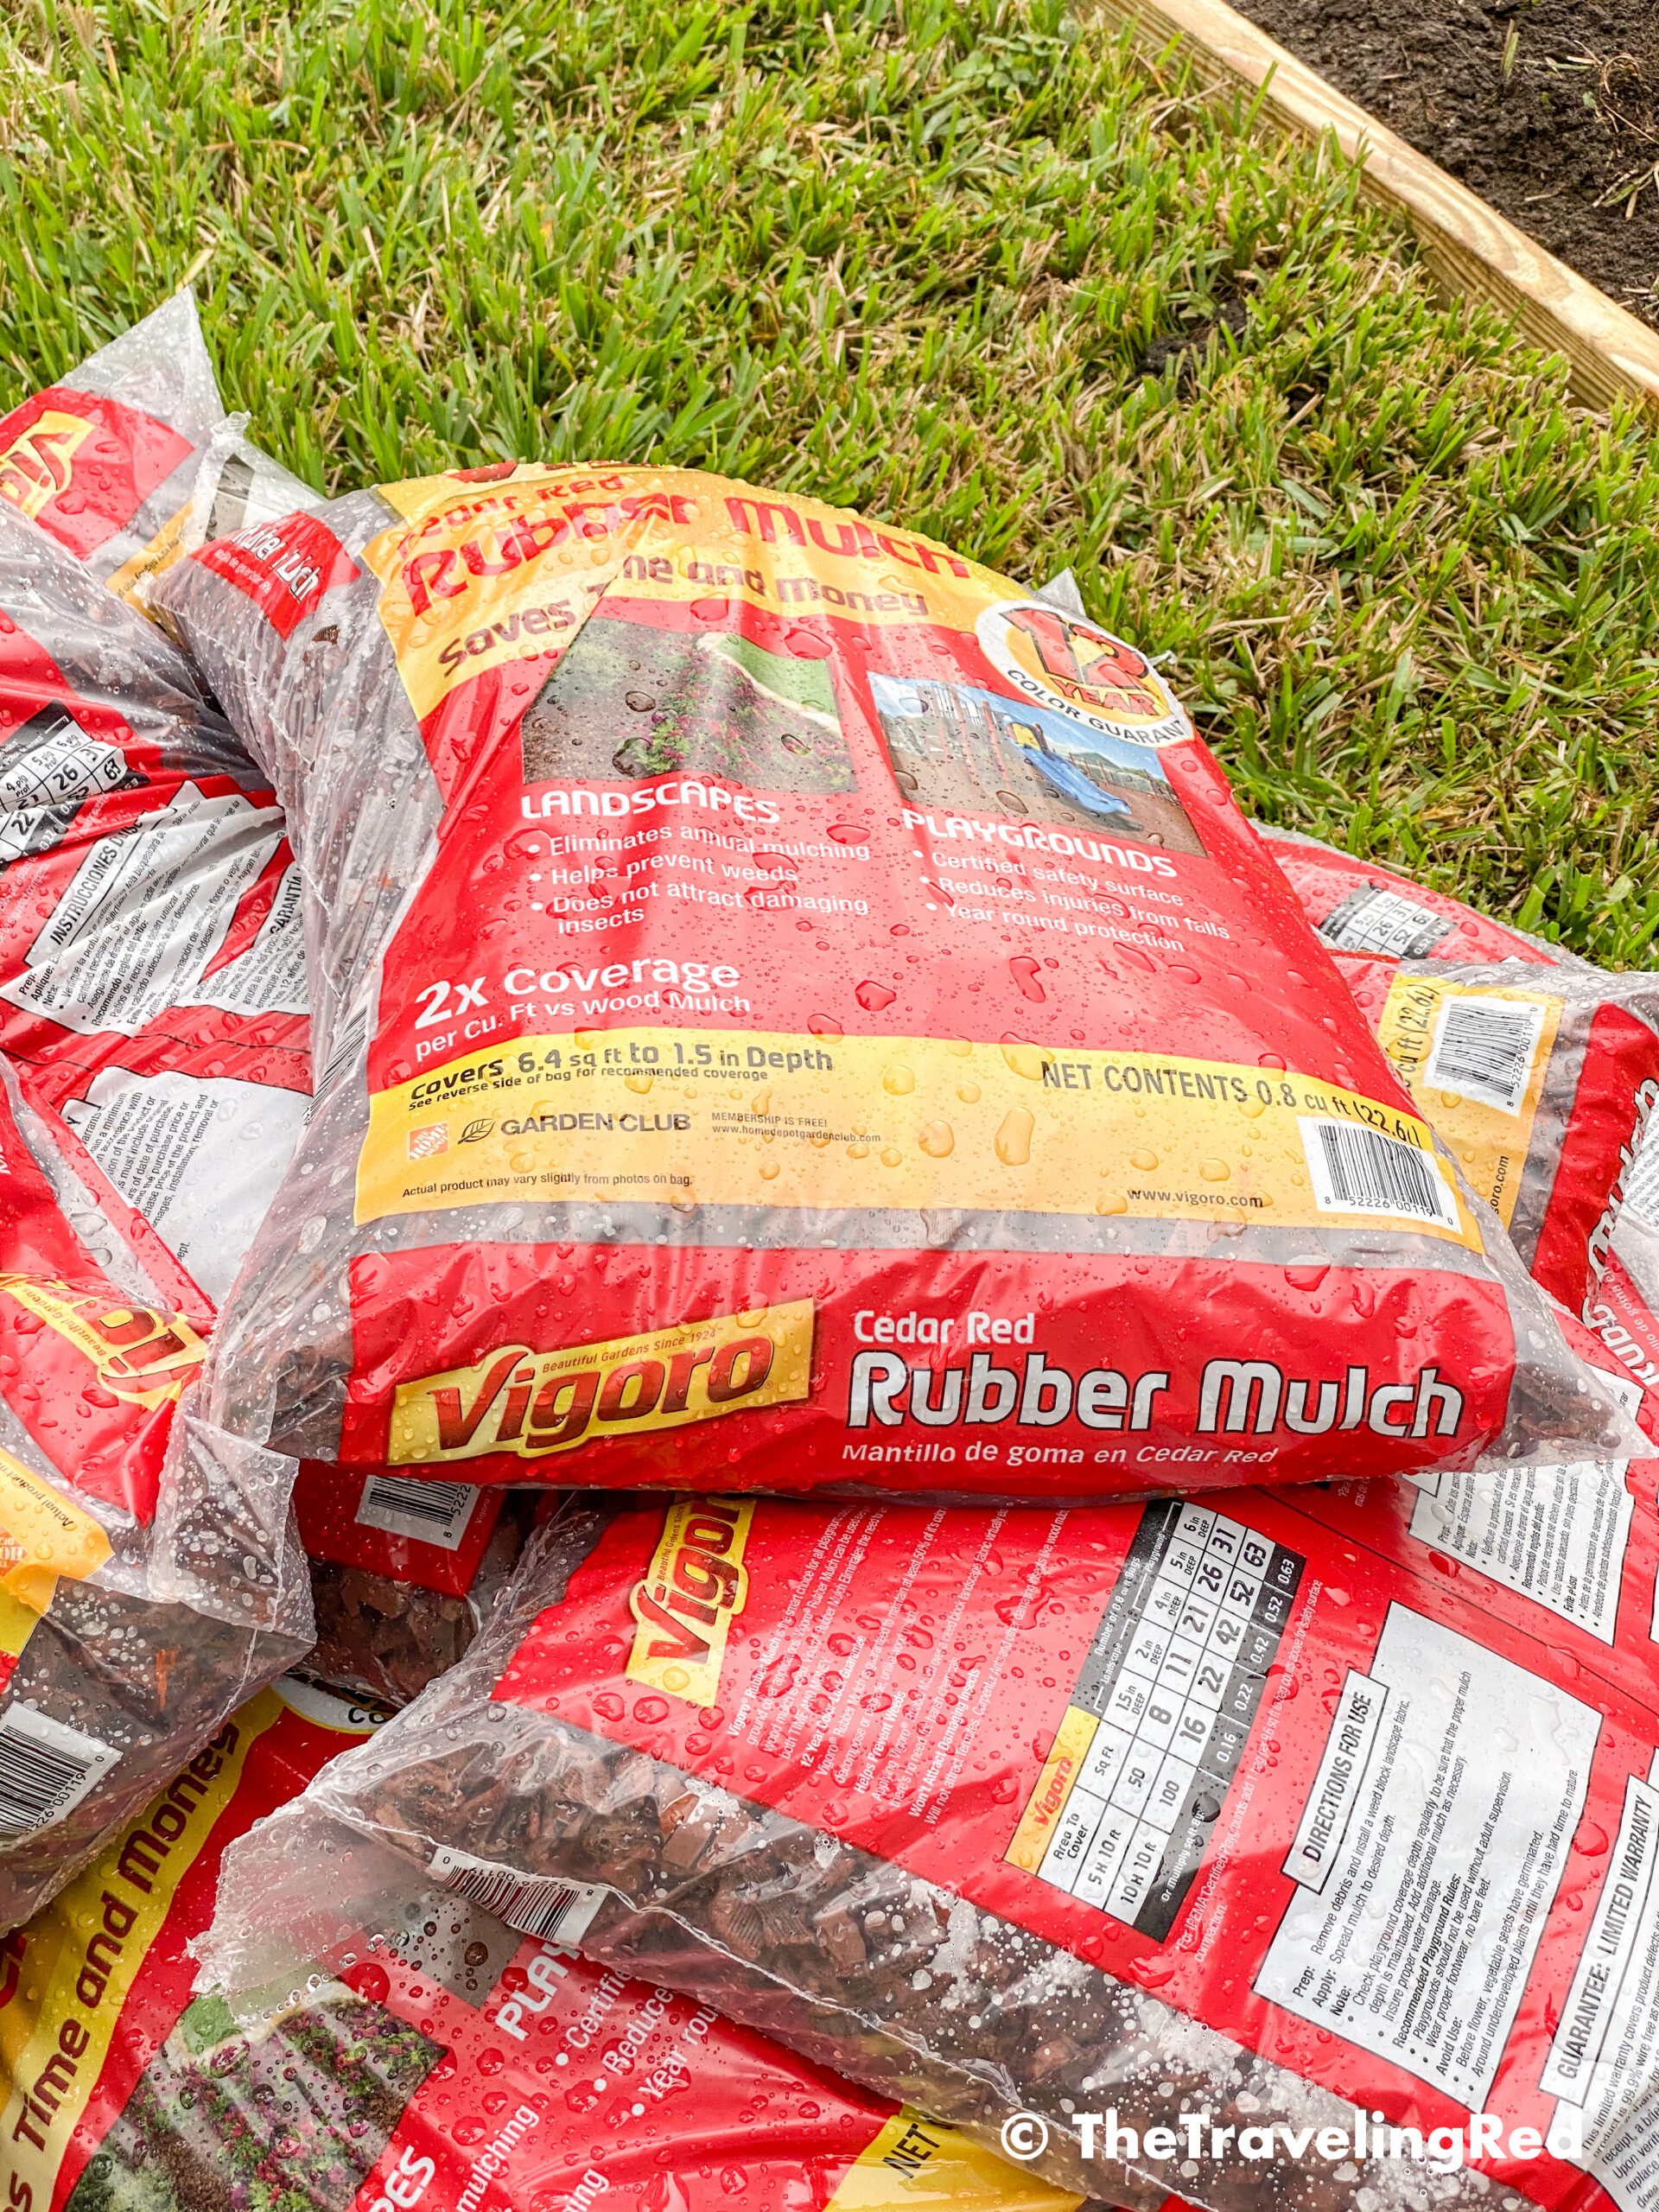 How to build a custom backyard playground with rubber mulch. Step 6 is to add the mulch. We chose red rubber mulch for aesthetic but to also keep it soft for the kids. This space will fit our swingset, playhouse, sandbox or any other outdoor toys you plan to include. Perfect little outdoor play space for your kids to enjoy playing outside.